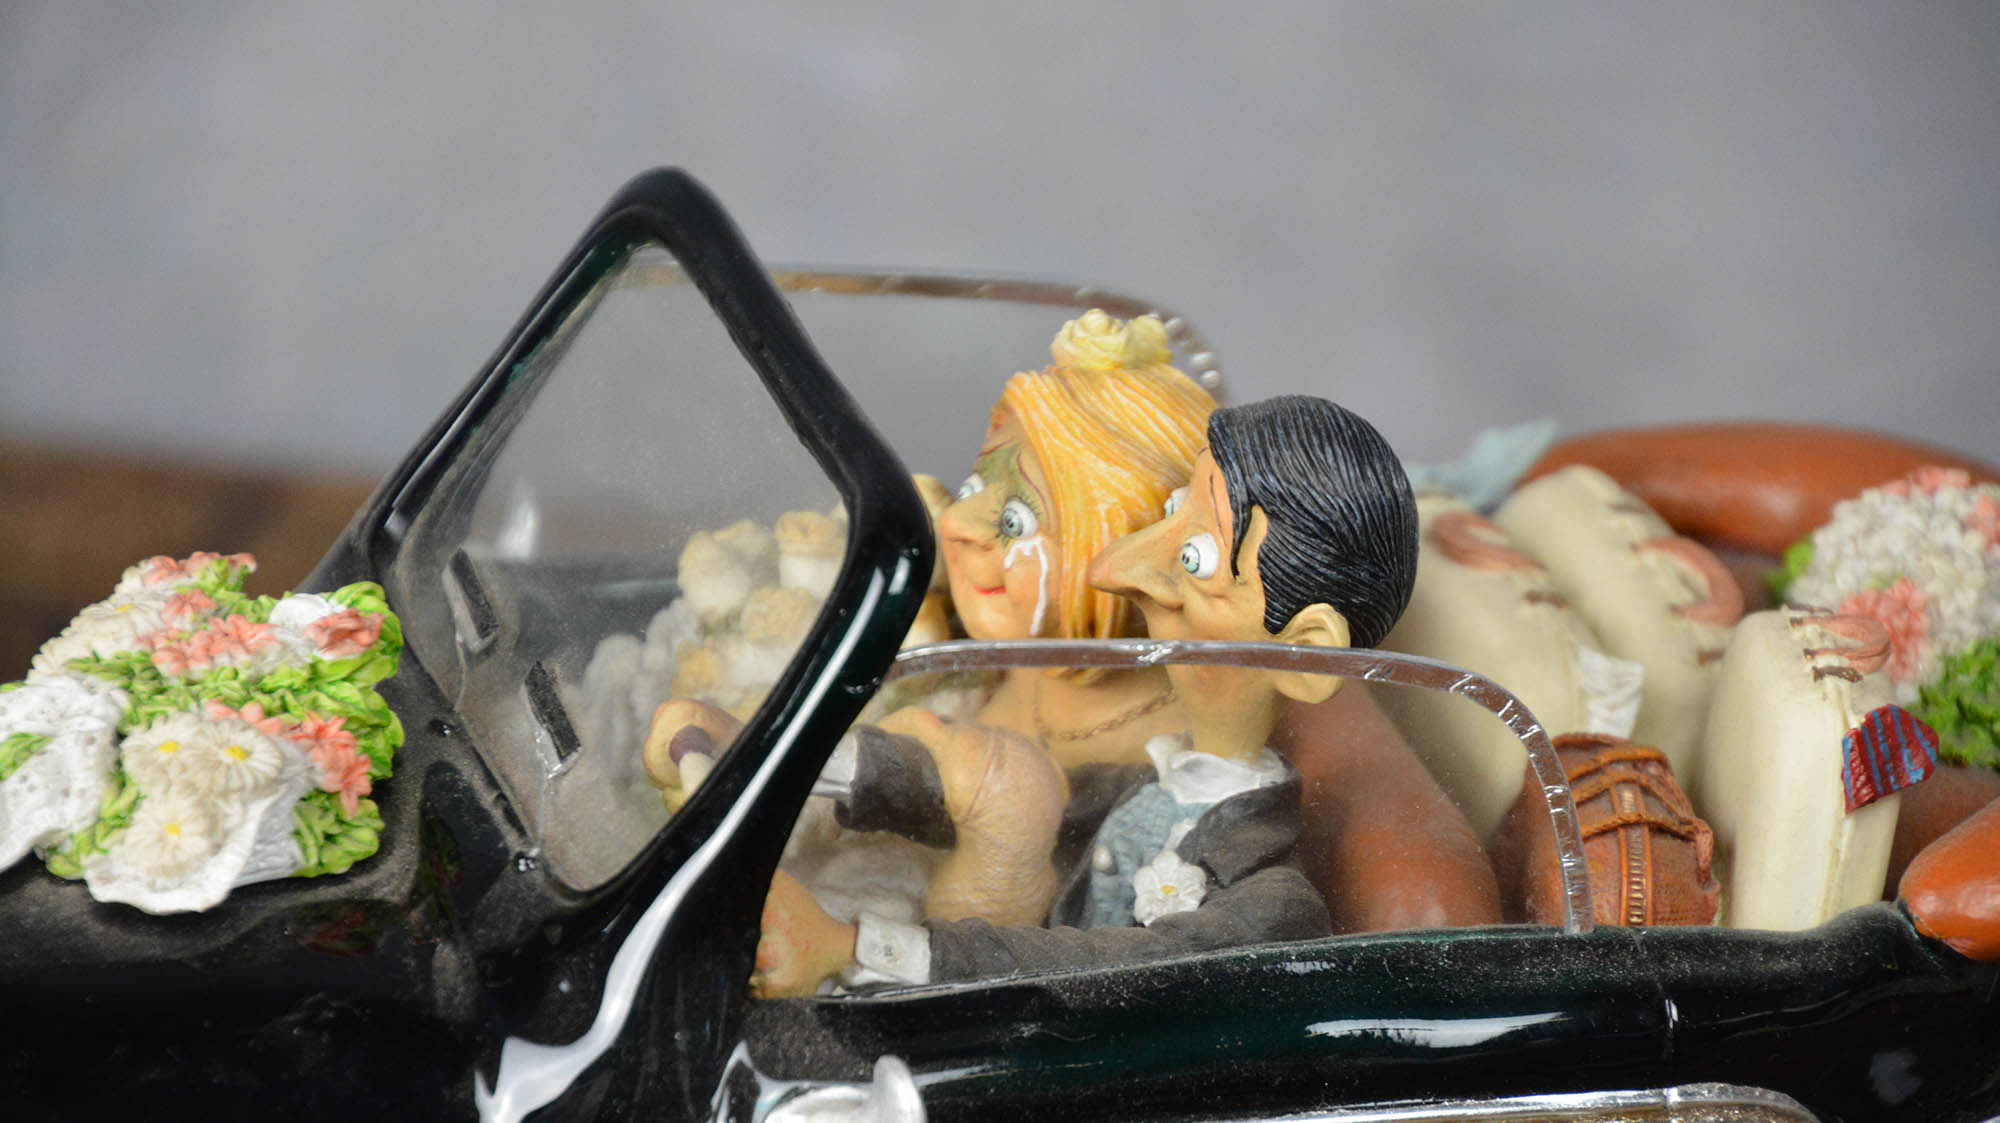 boutique figurine piece artisanale vehicule maries parodie